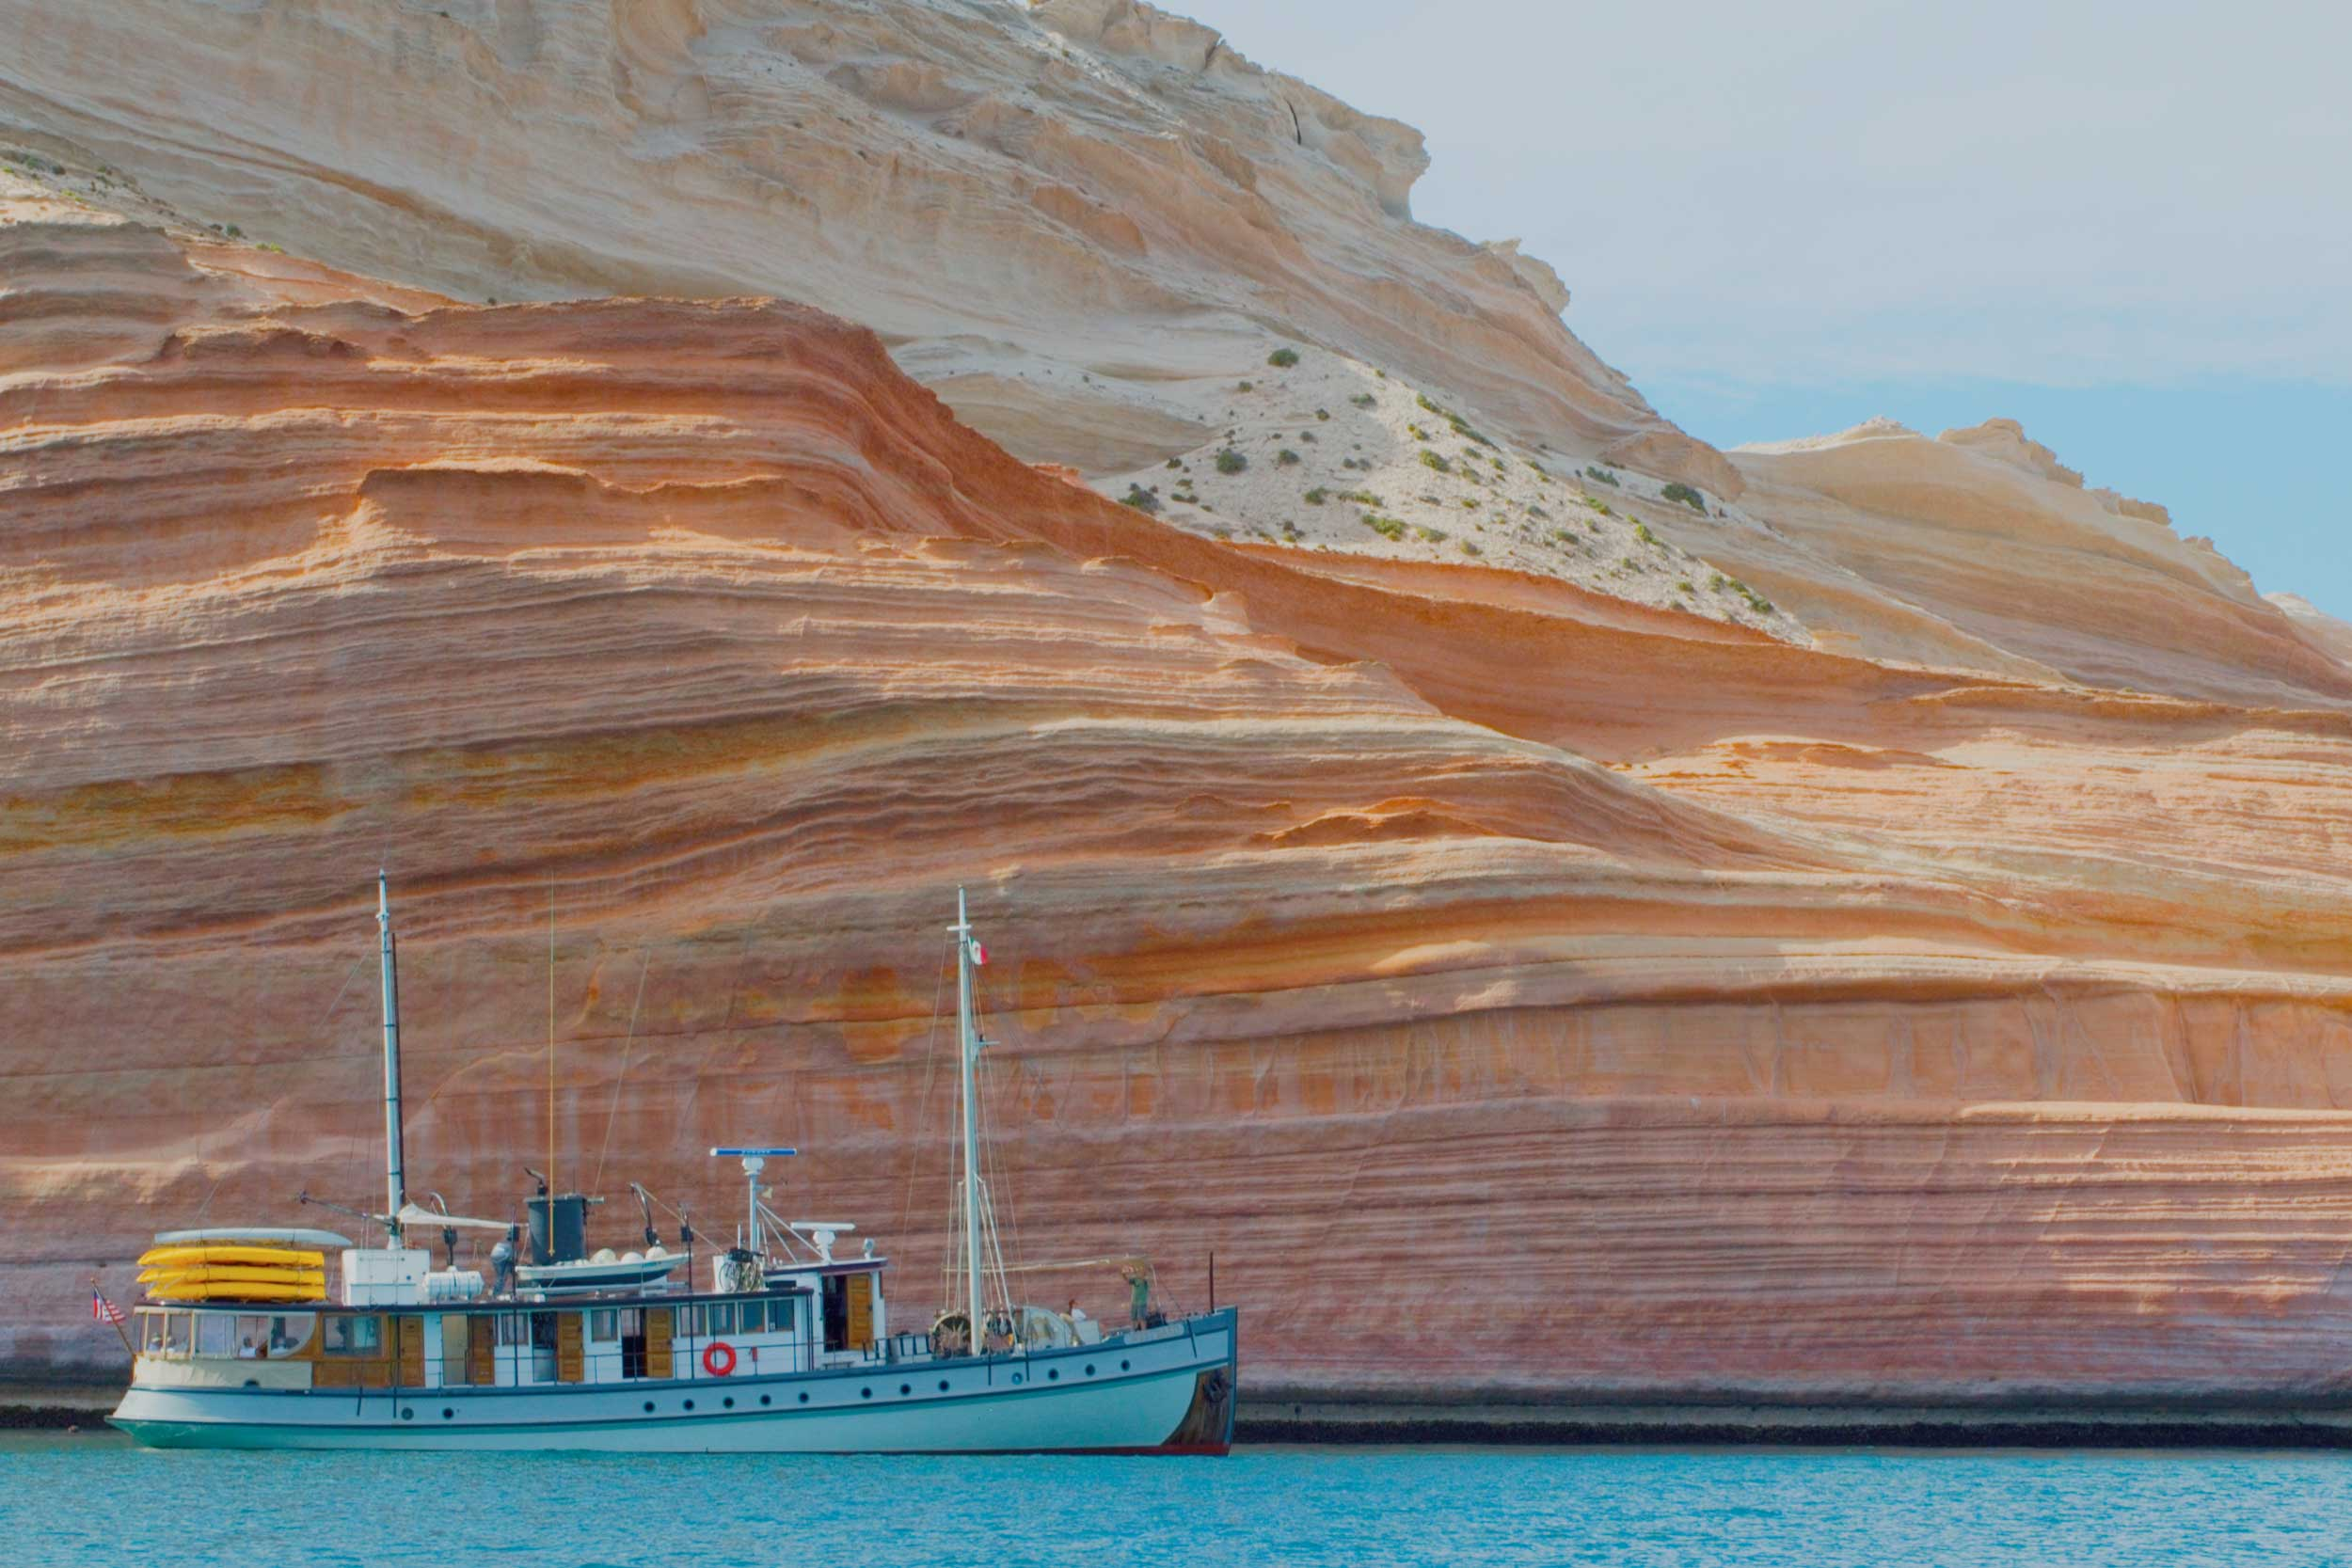 Twin-masted schooner sailing on acquamarine waters past an orange striated rockface, Baja, Mexico